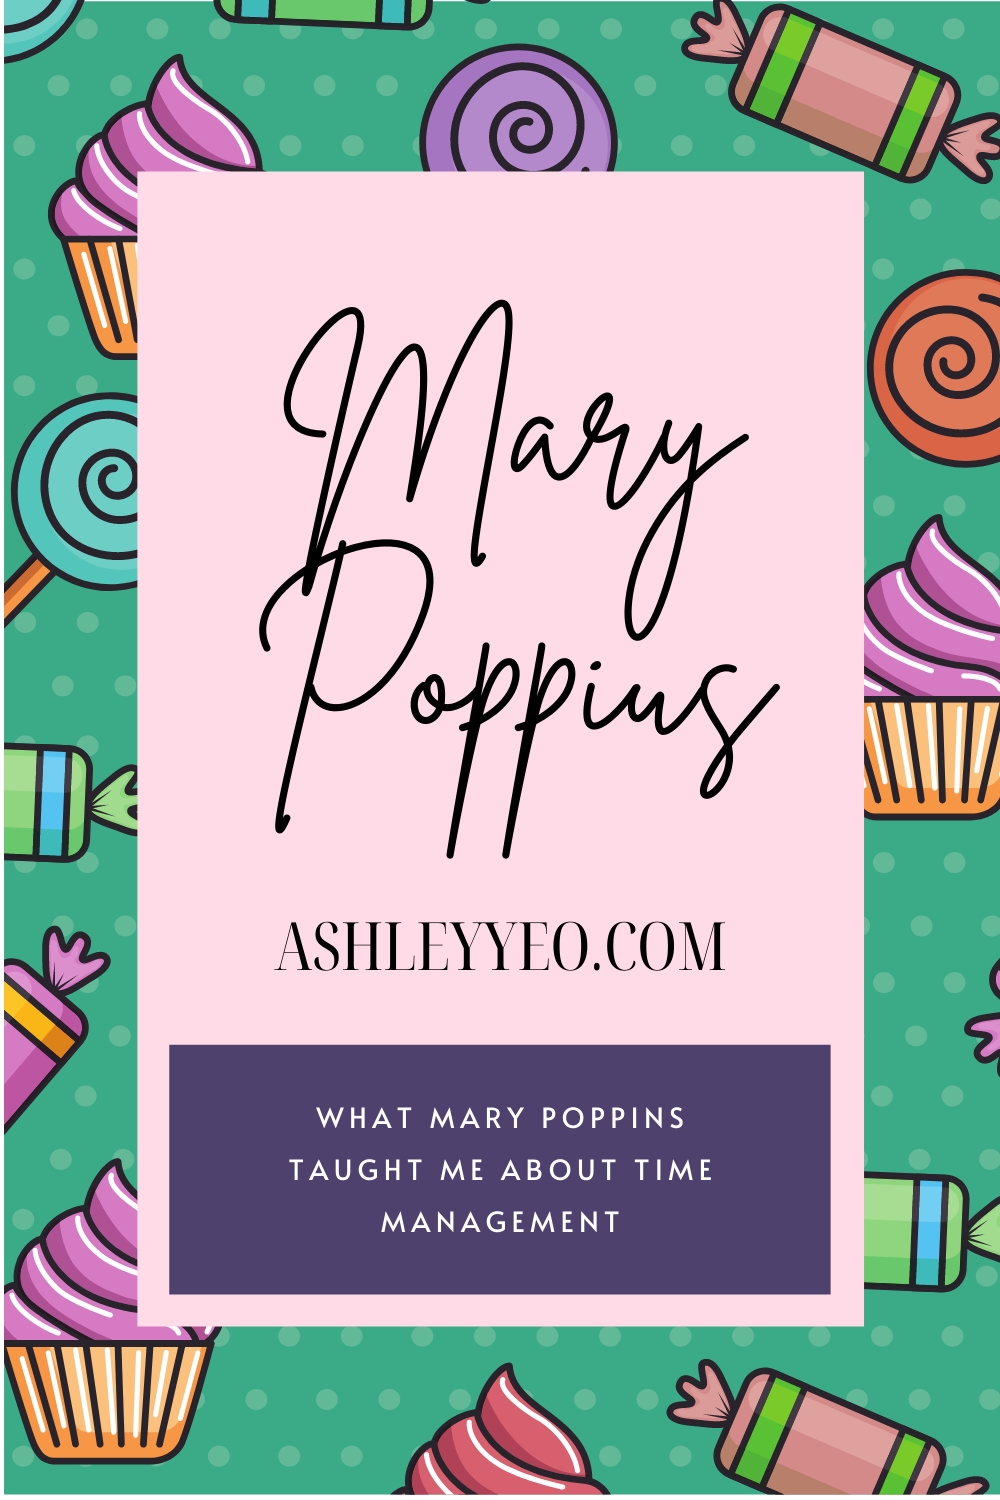 What Mary Poppins Taught Me About Time Management